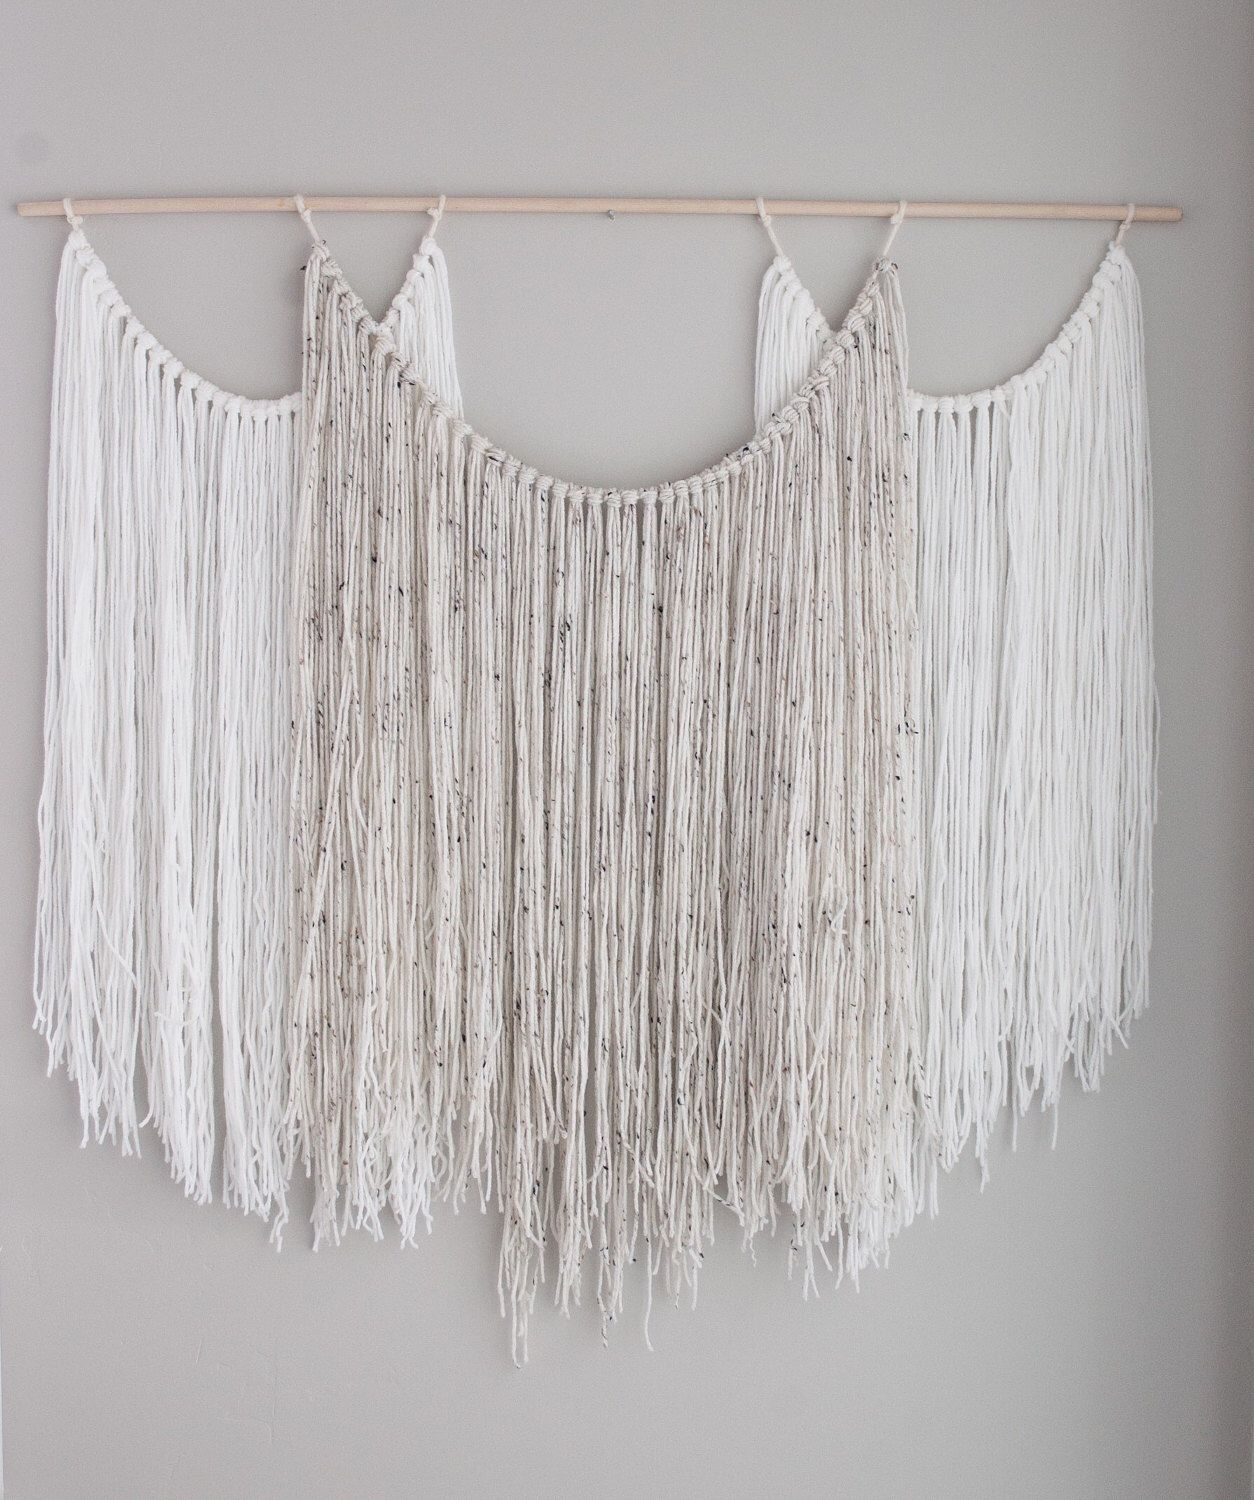 large macrame wall hanging bedroom nursery decor boho pin by aspen branham on shri designs co yarn wall